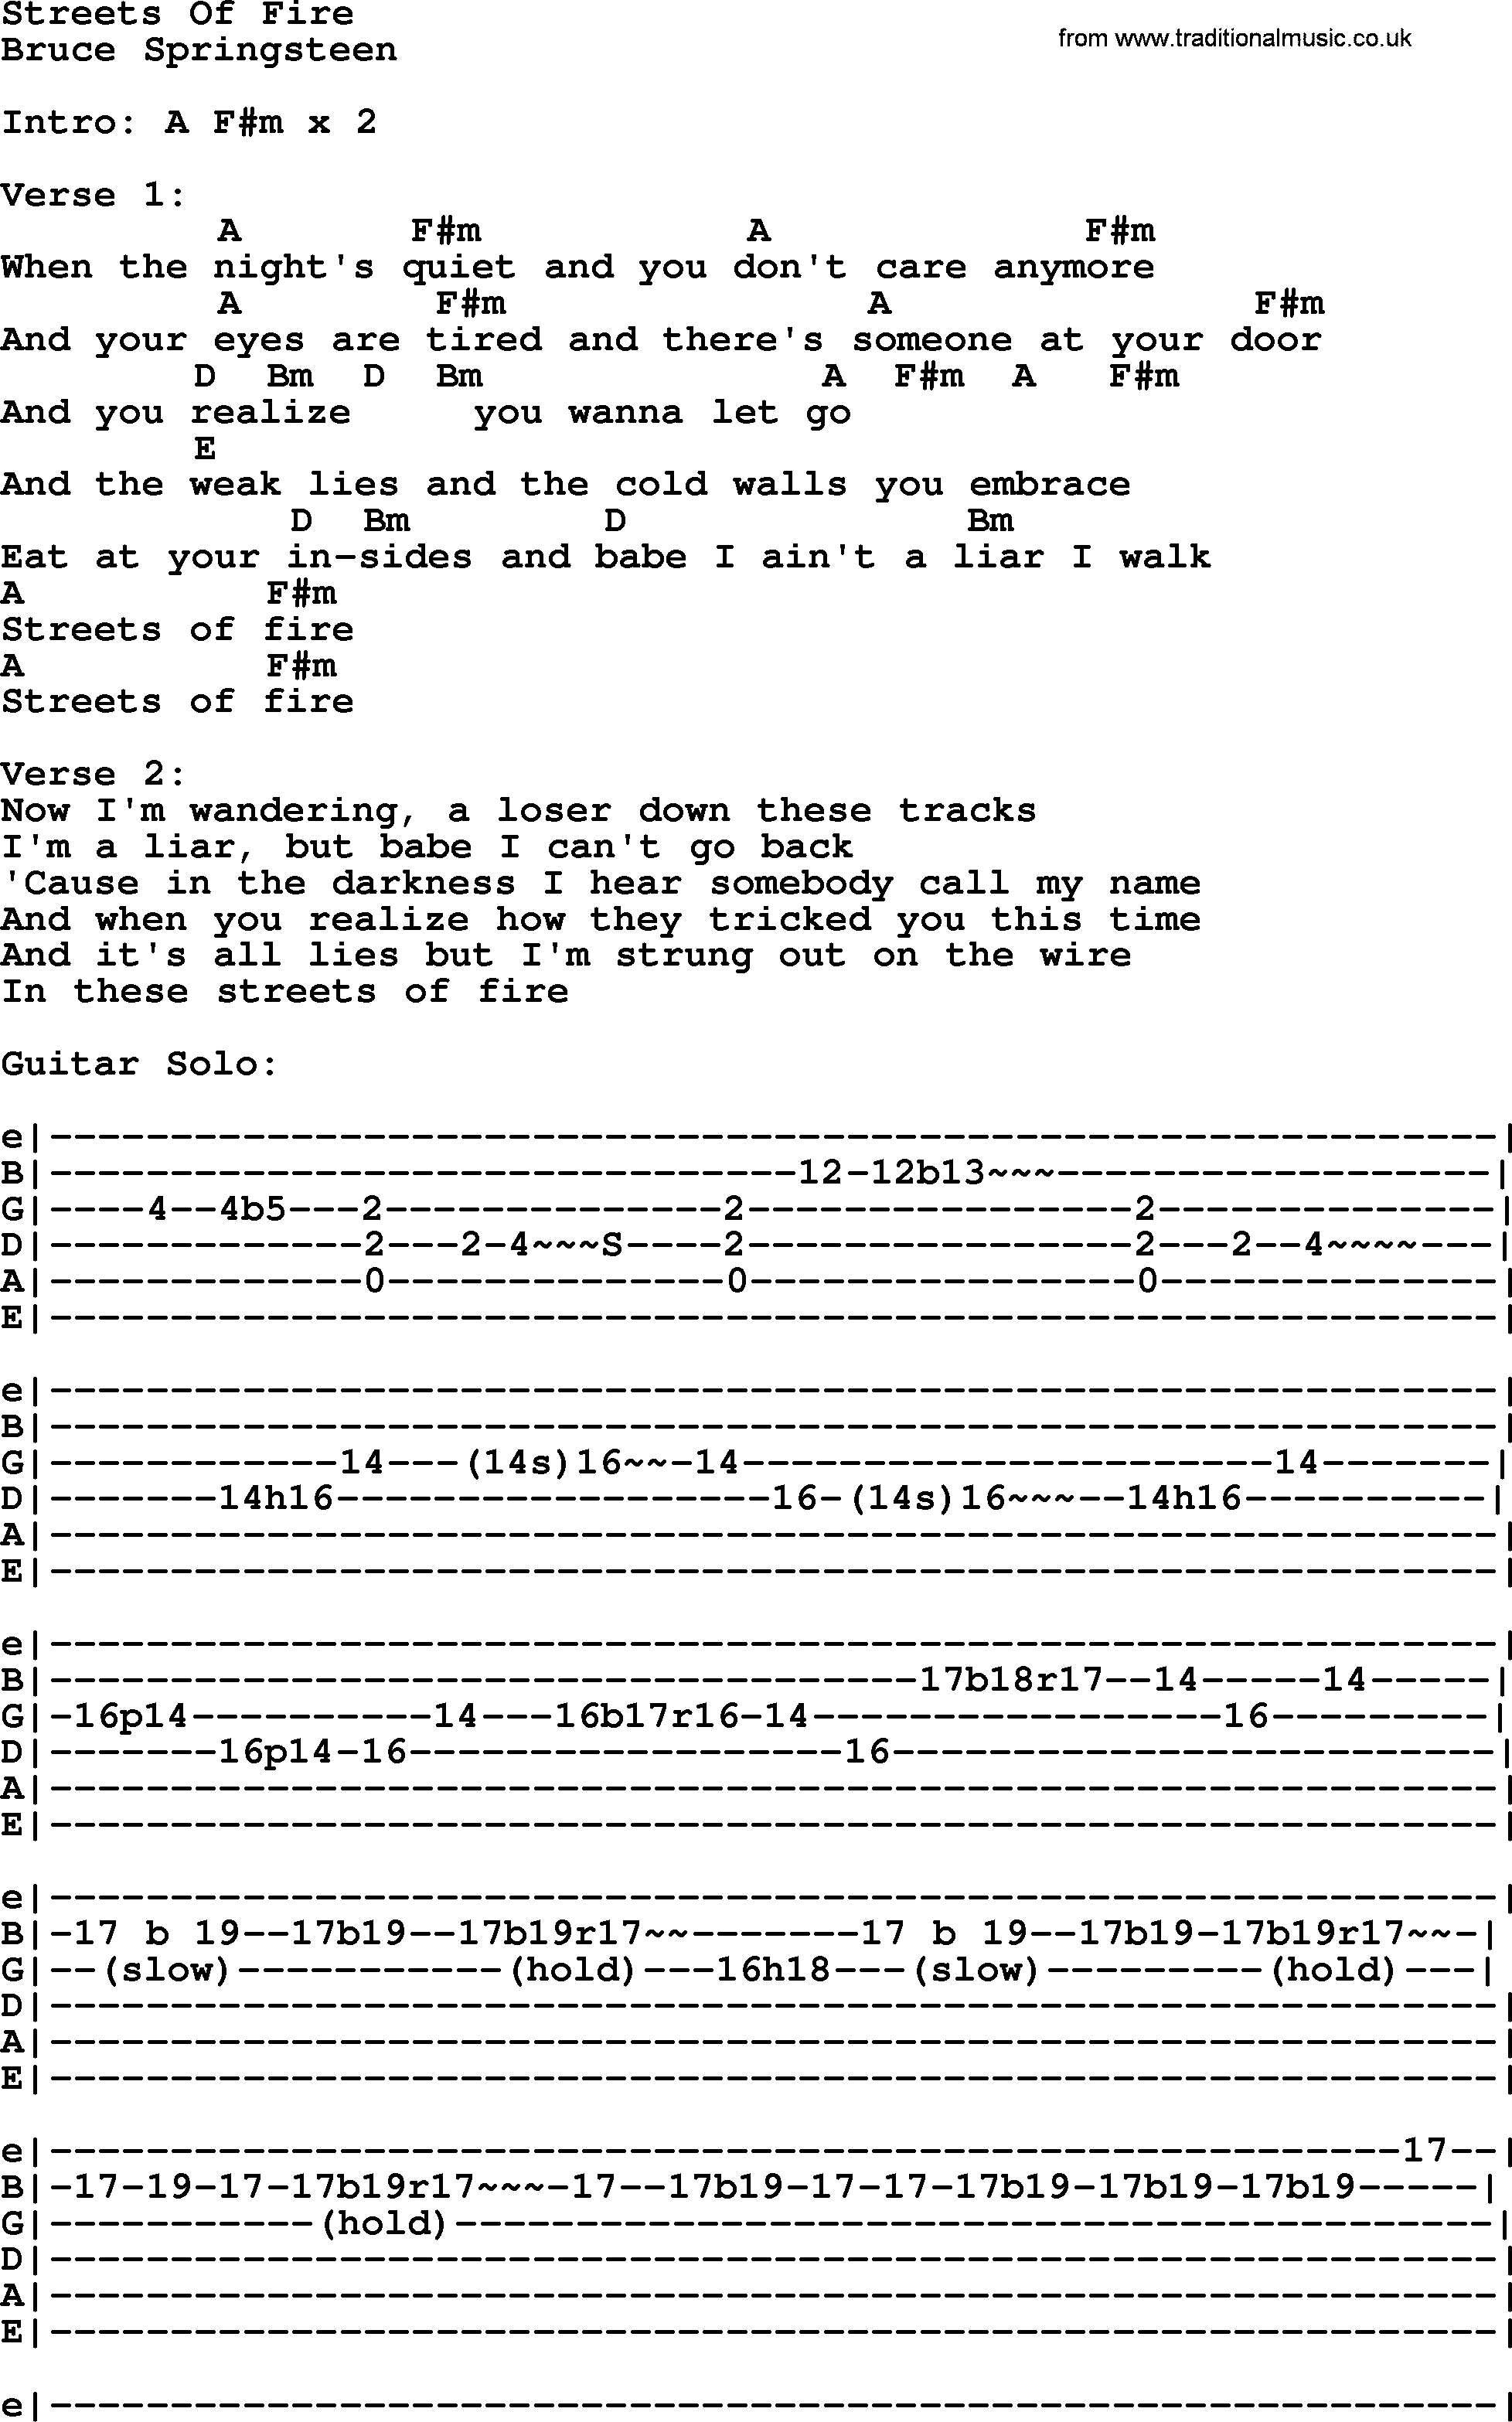 Bruce Springsteen Song Streets Of Fire Lyrics And Chords